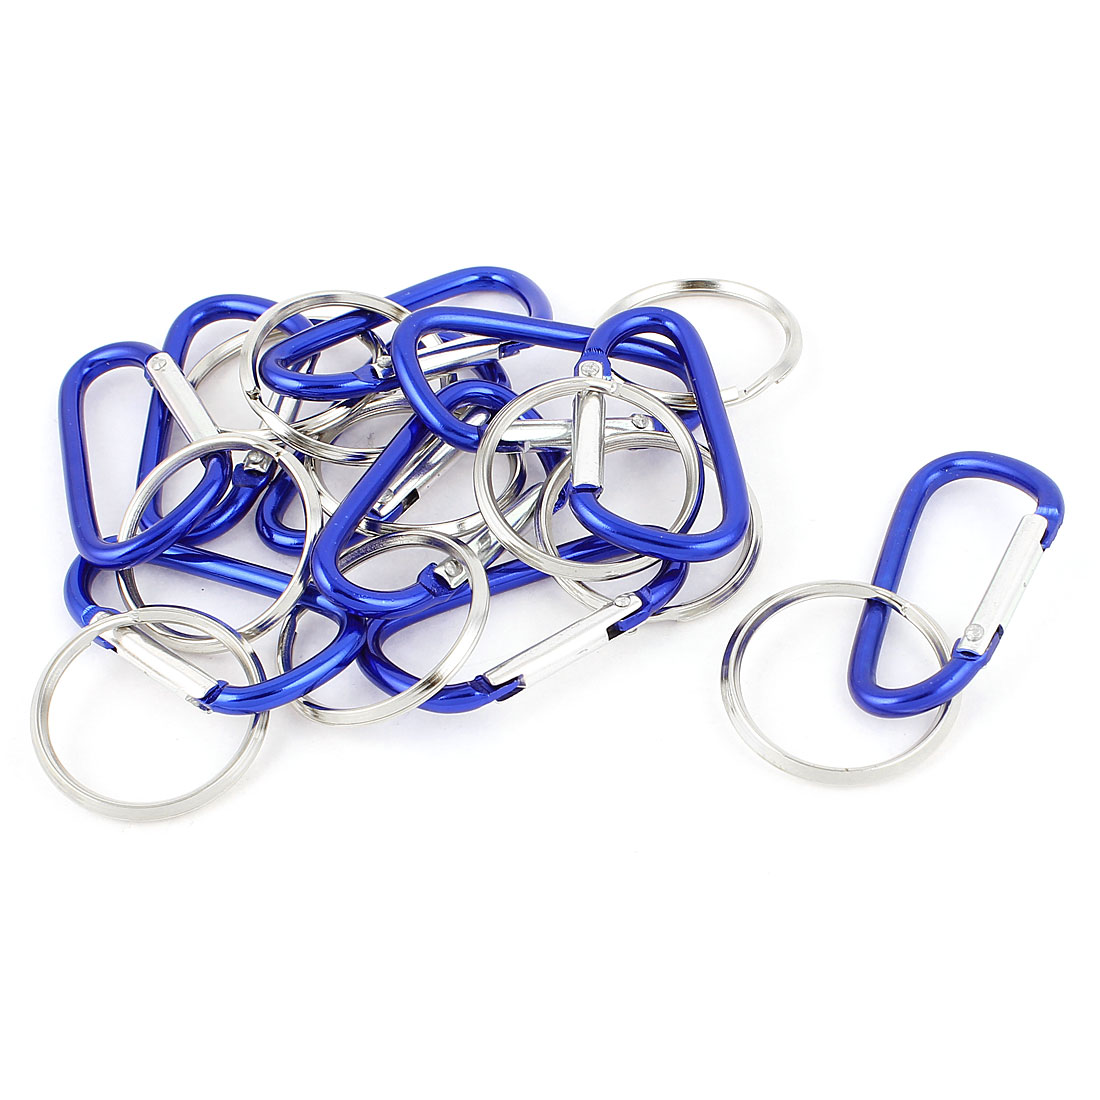 Camping Cycling Metal D Shape Clip Carabiner Hook Key Chain Keyring Keychain Bottle Holder 10pcs Blue